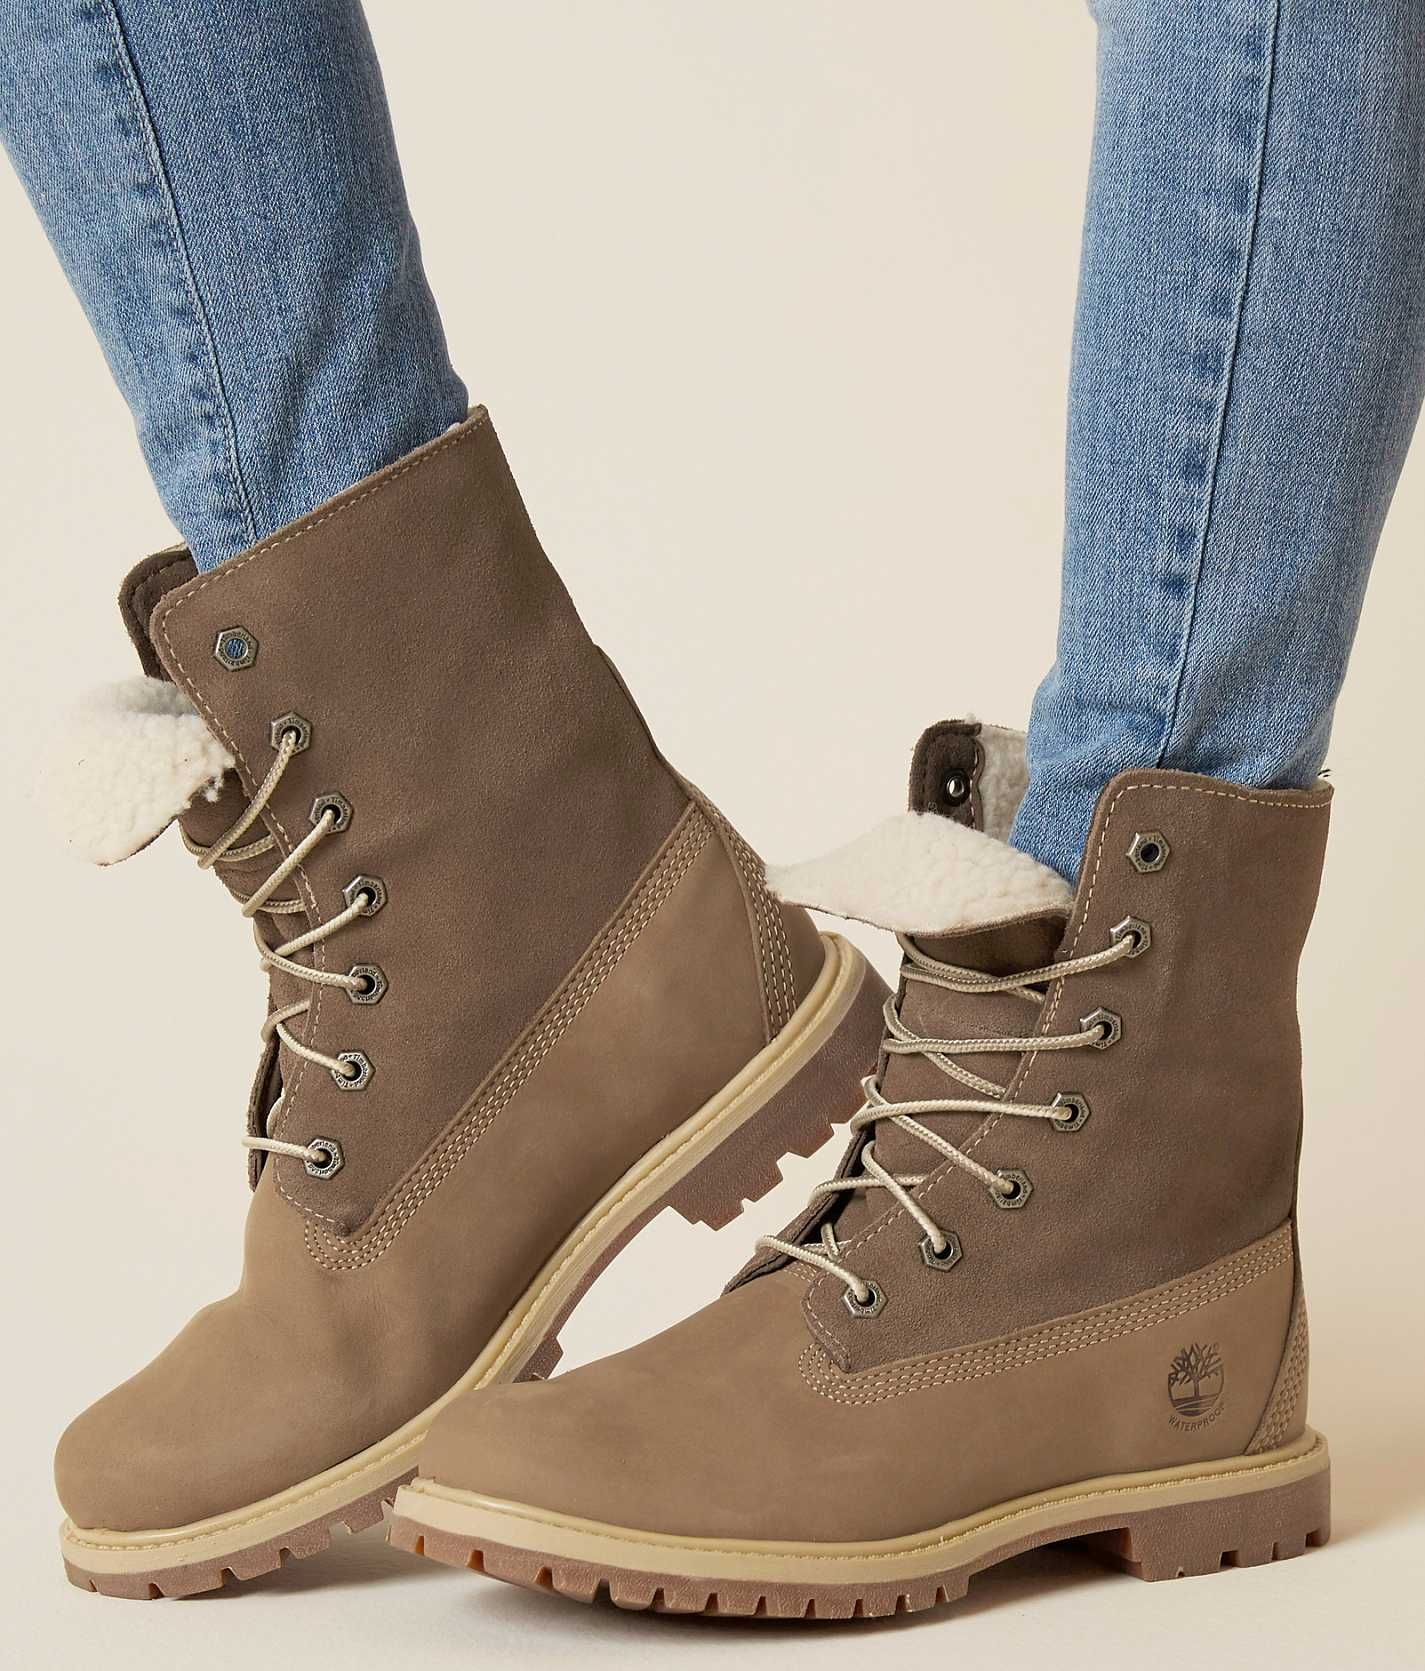 Timberland Teddy Boot - Women's Shoes